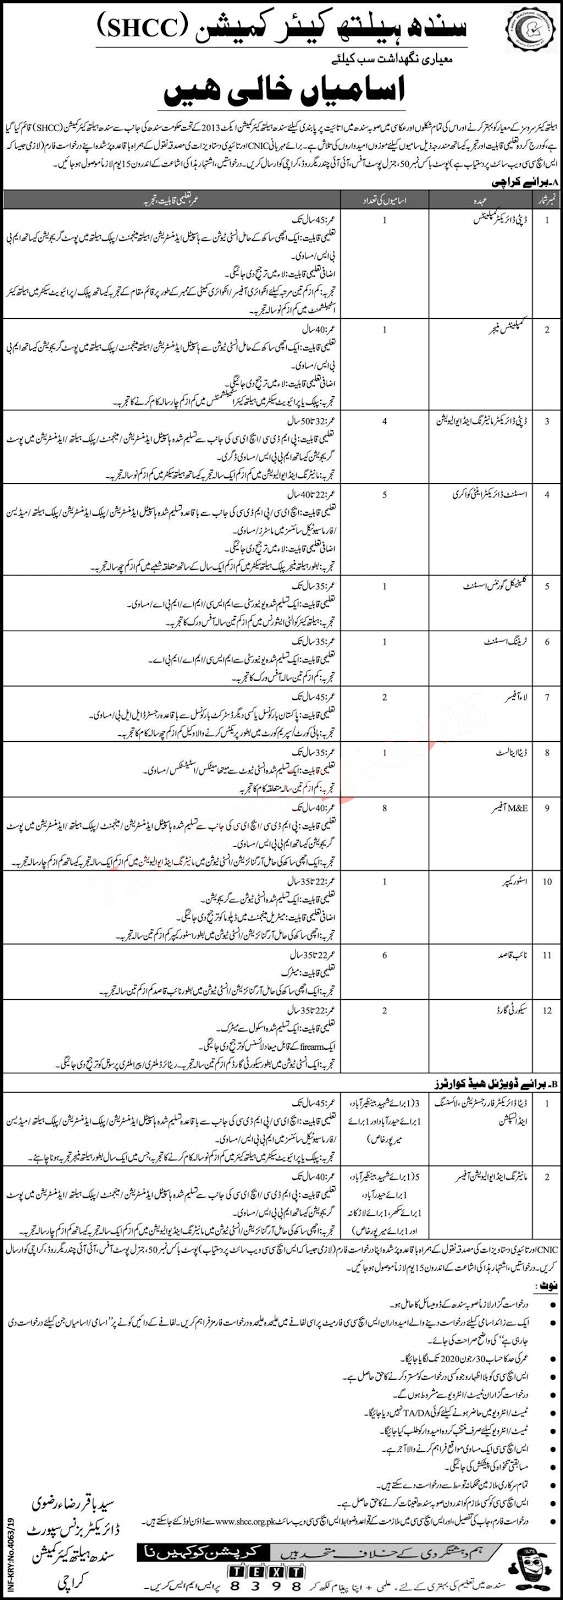 Sindh Health Care Commission SHCC Jobs 2019